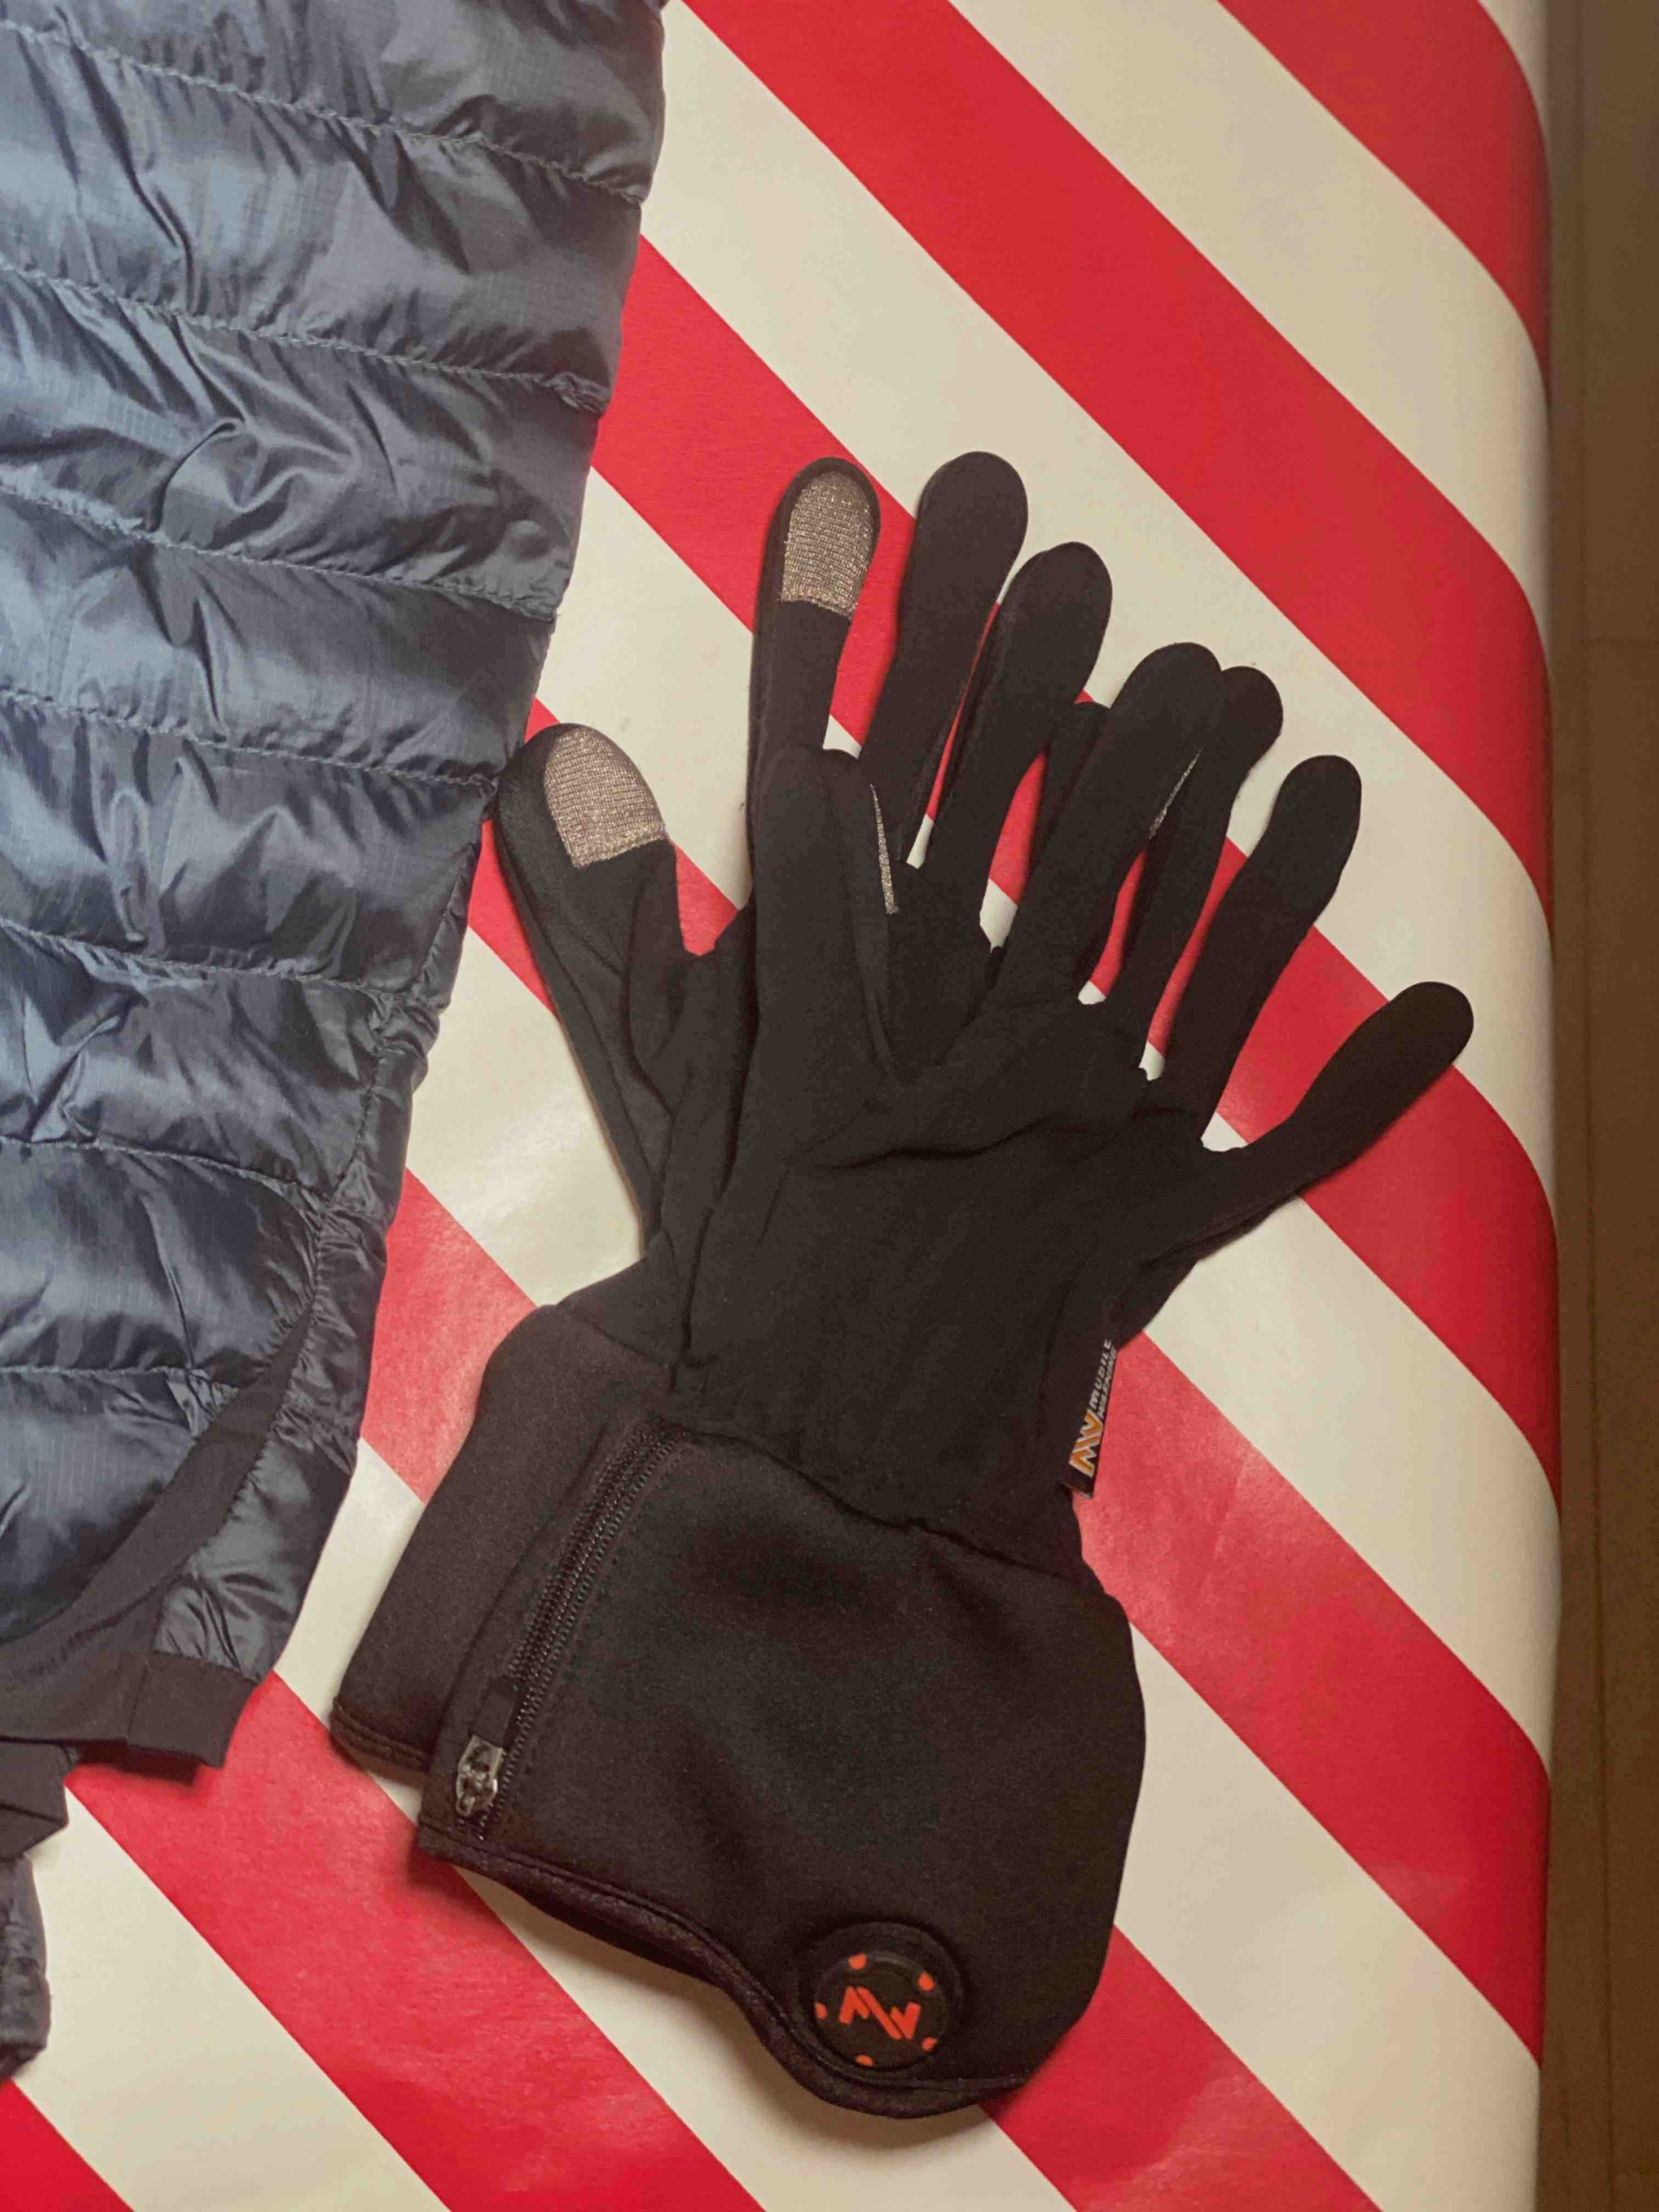 Fieldsheer Heated Glove Liners To Keep You Warm In The Outdoors